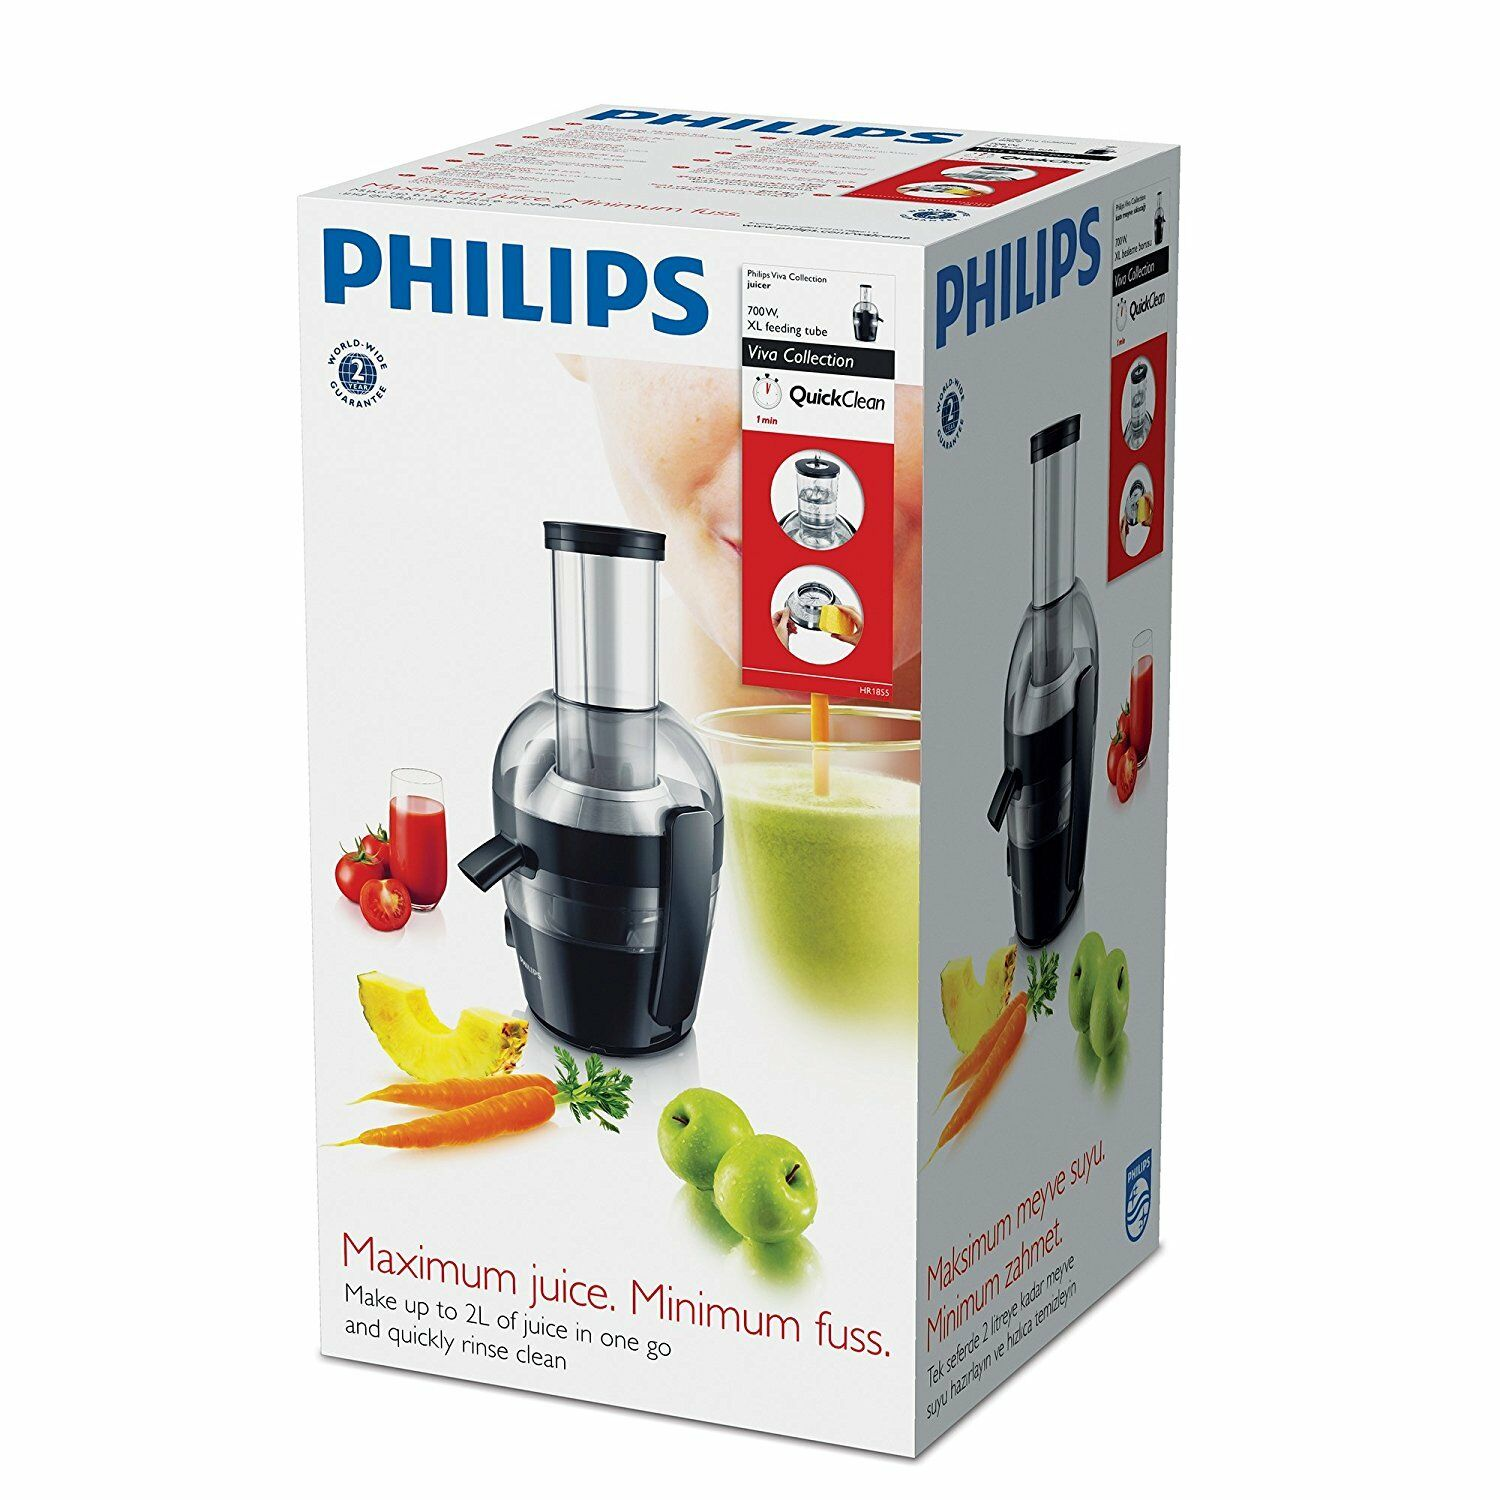 Details about Philips Viva Collection Hr1852 Juicer Black Pre Clean Functions 2L 800W